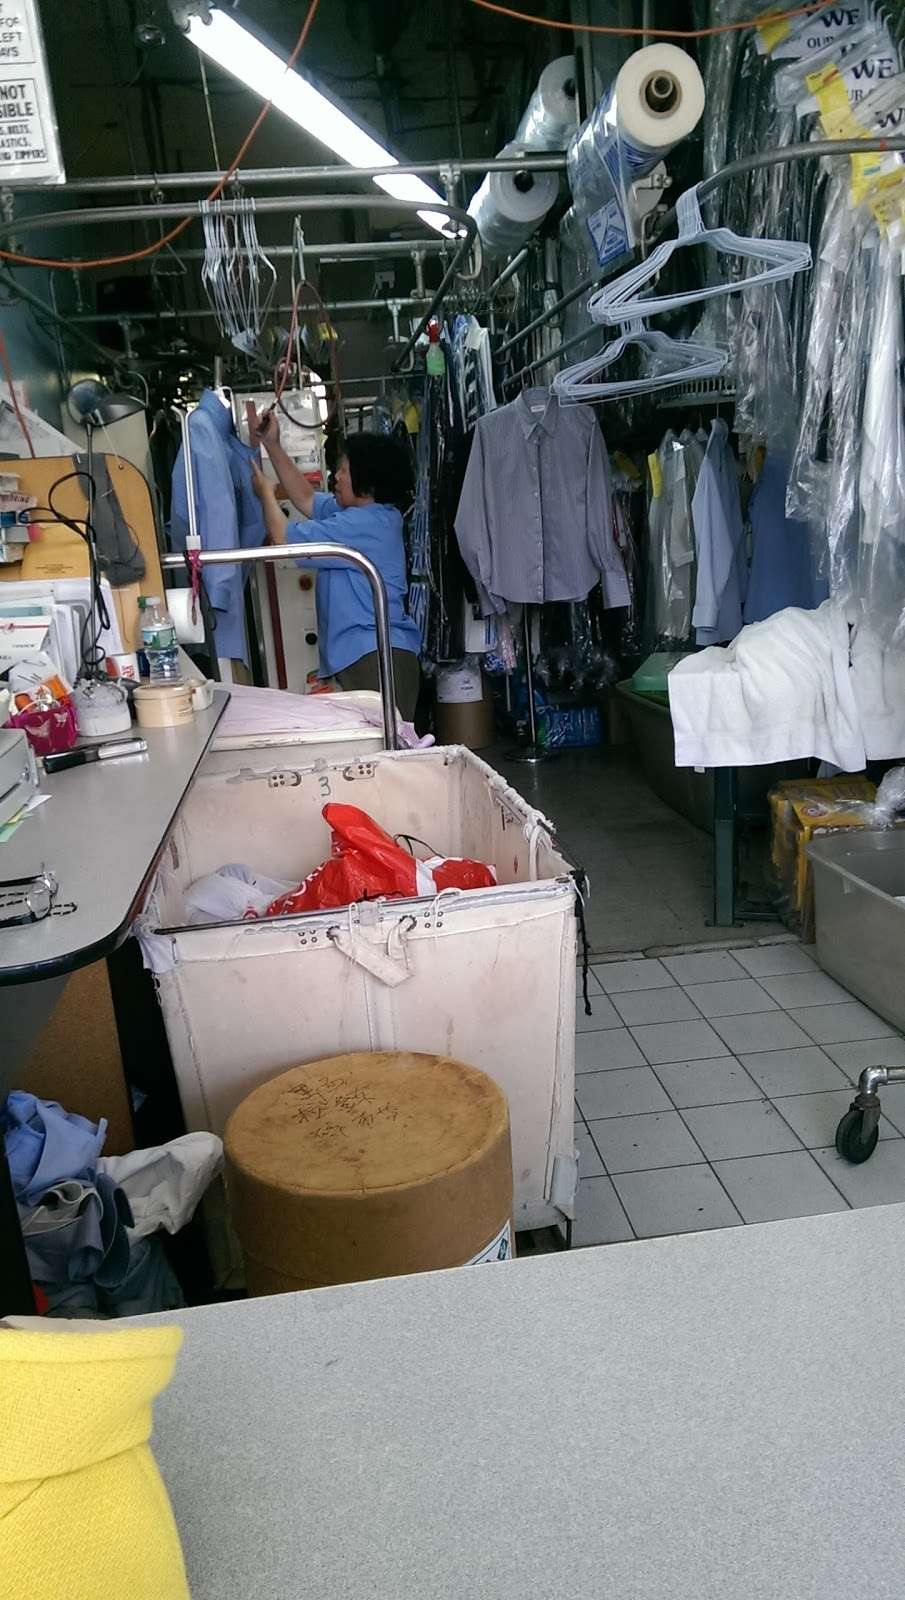 3rd Avenue Pro French Cleaners - laundry    Photo 1 of 2   Address: 9409 3rd Ave, Brooklyn, NY 11209, USA   Phone: (718) 833-6000